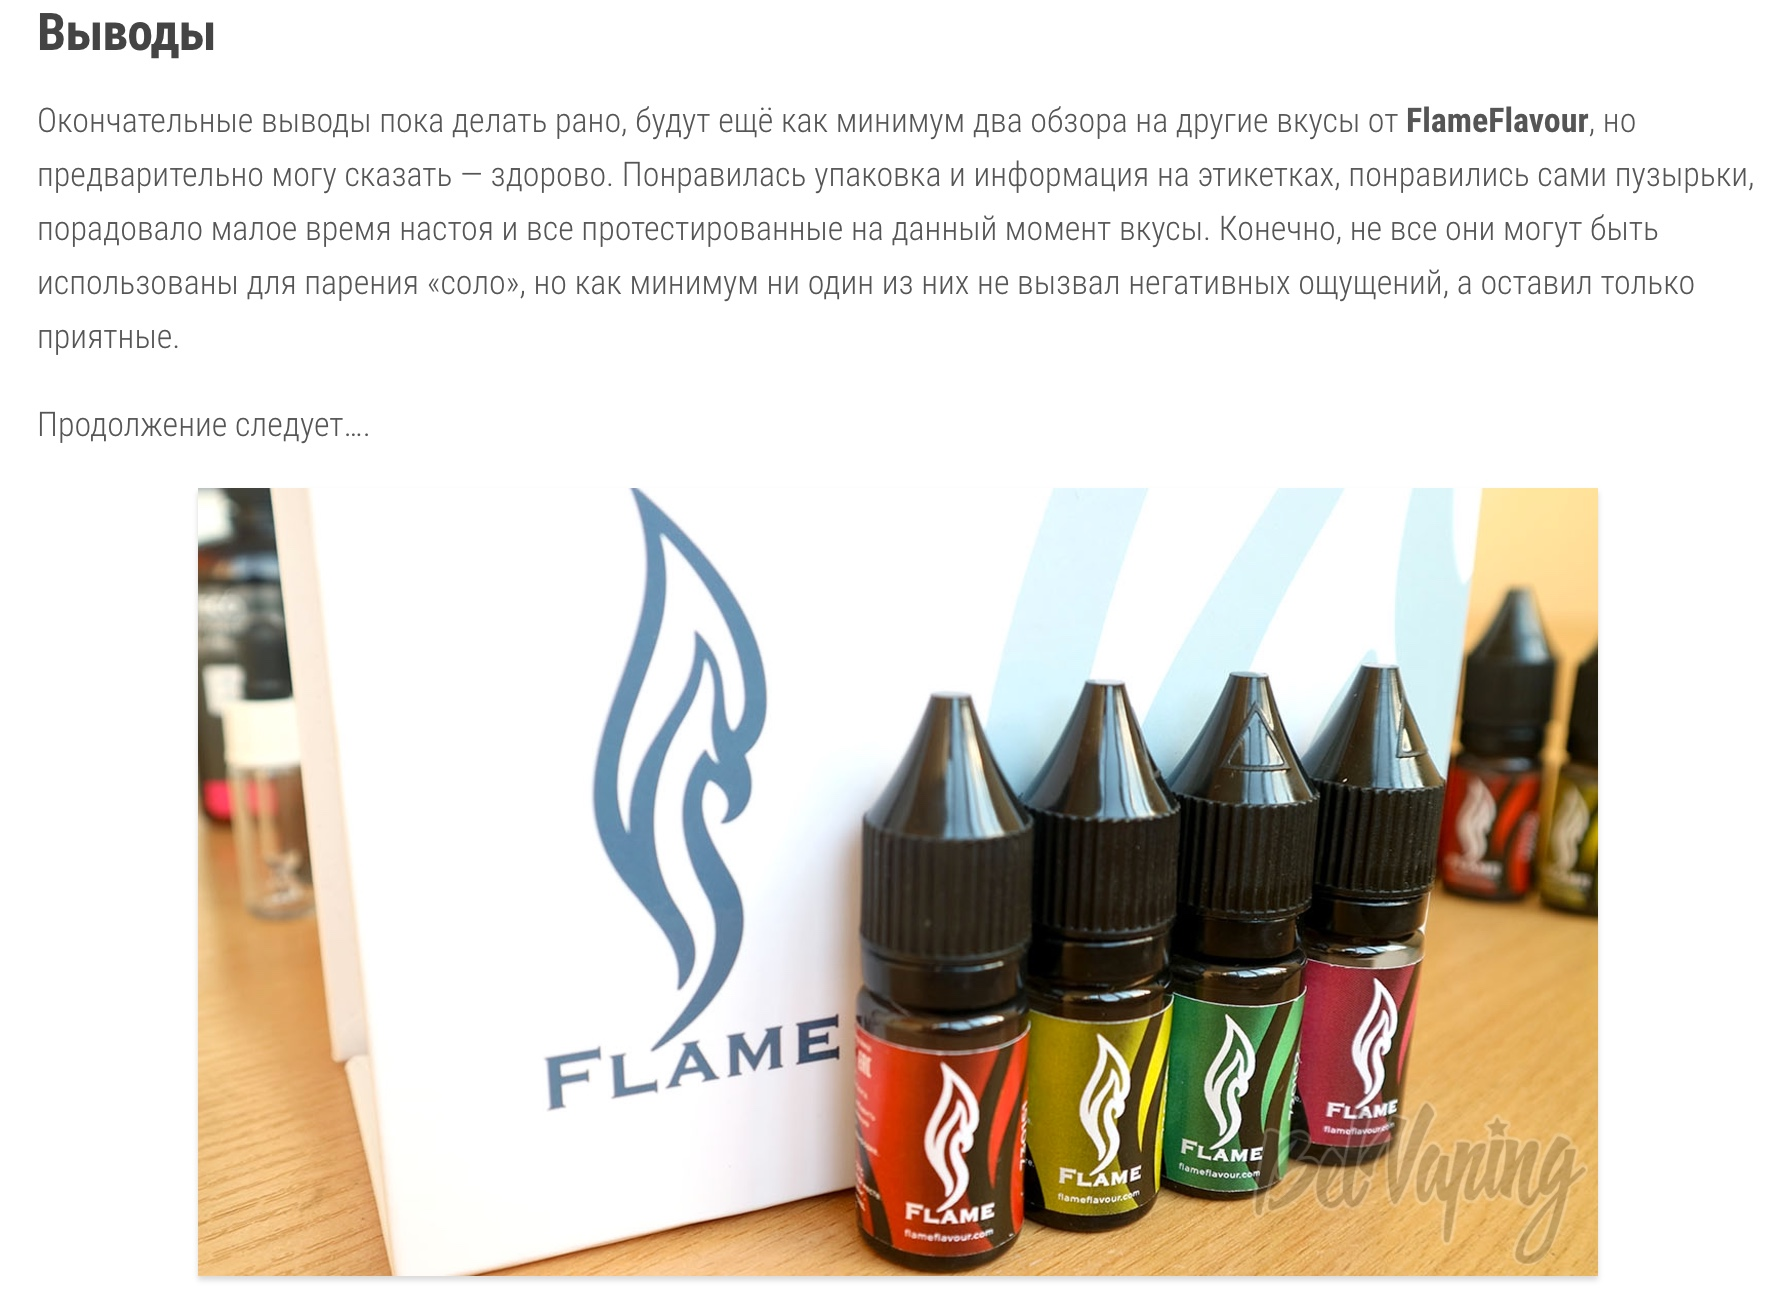 BelVaping obzor Flame 1